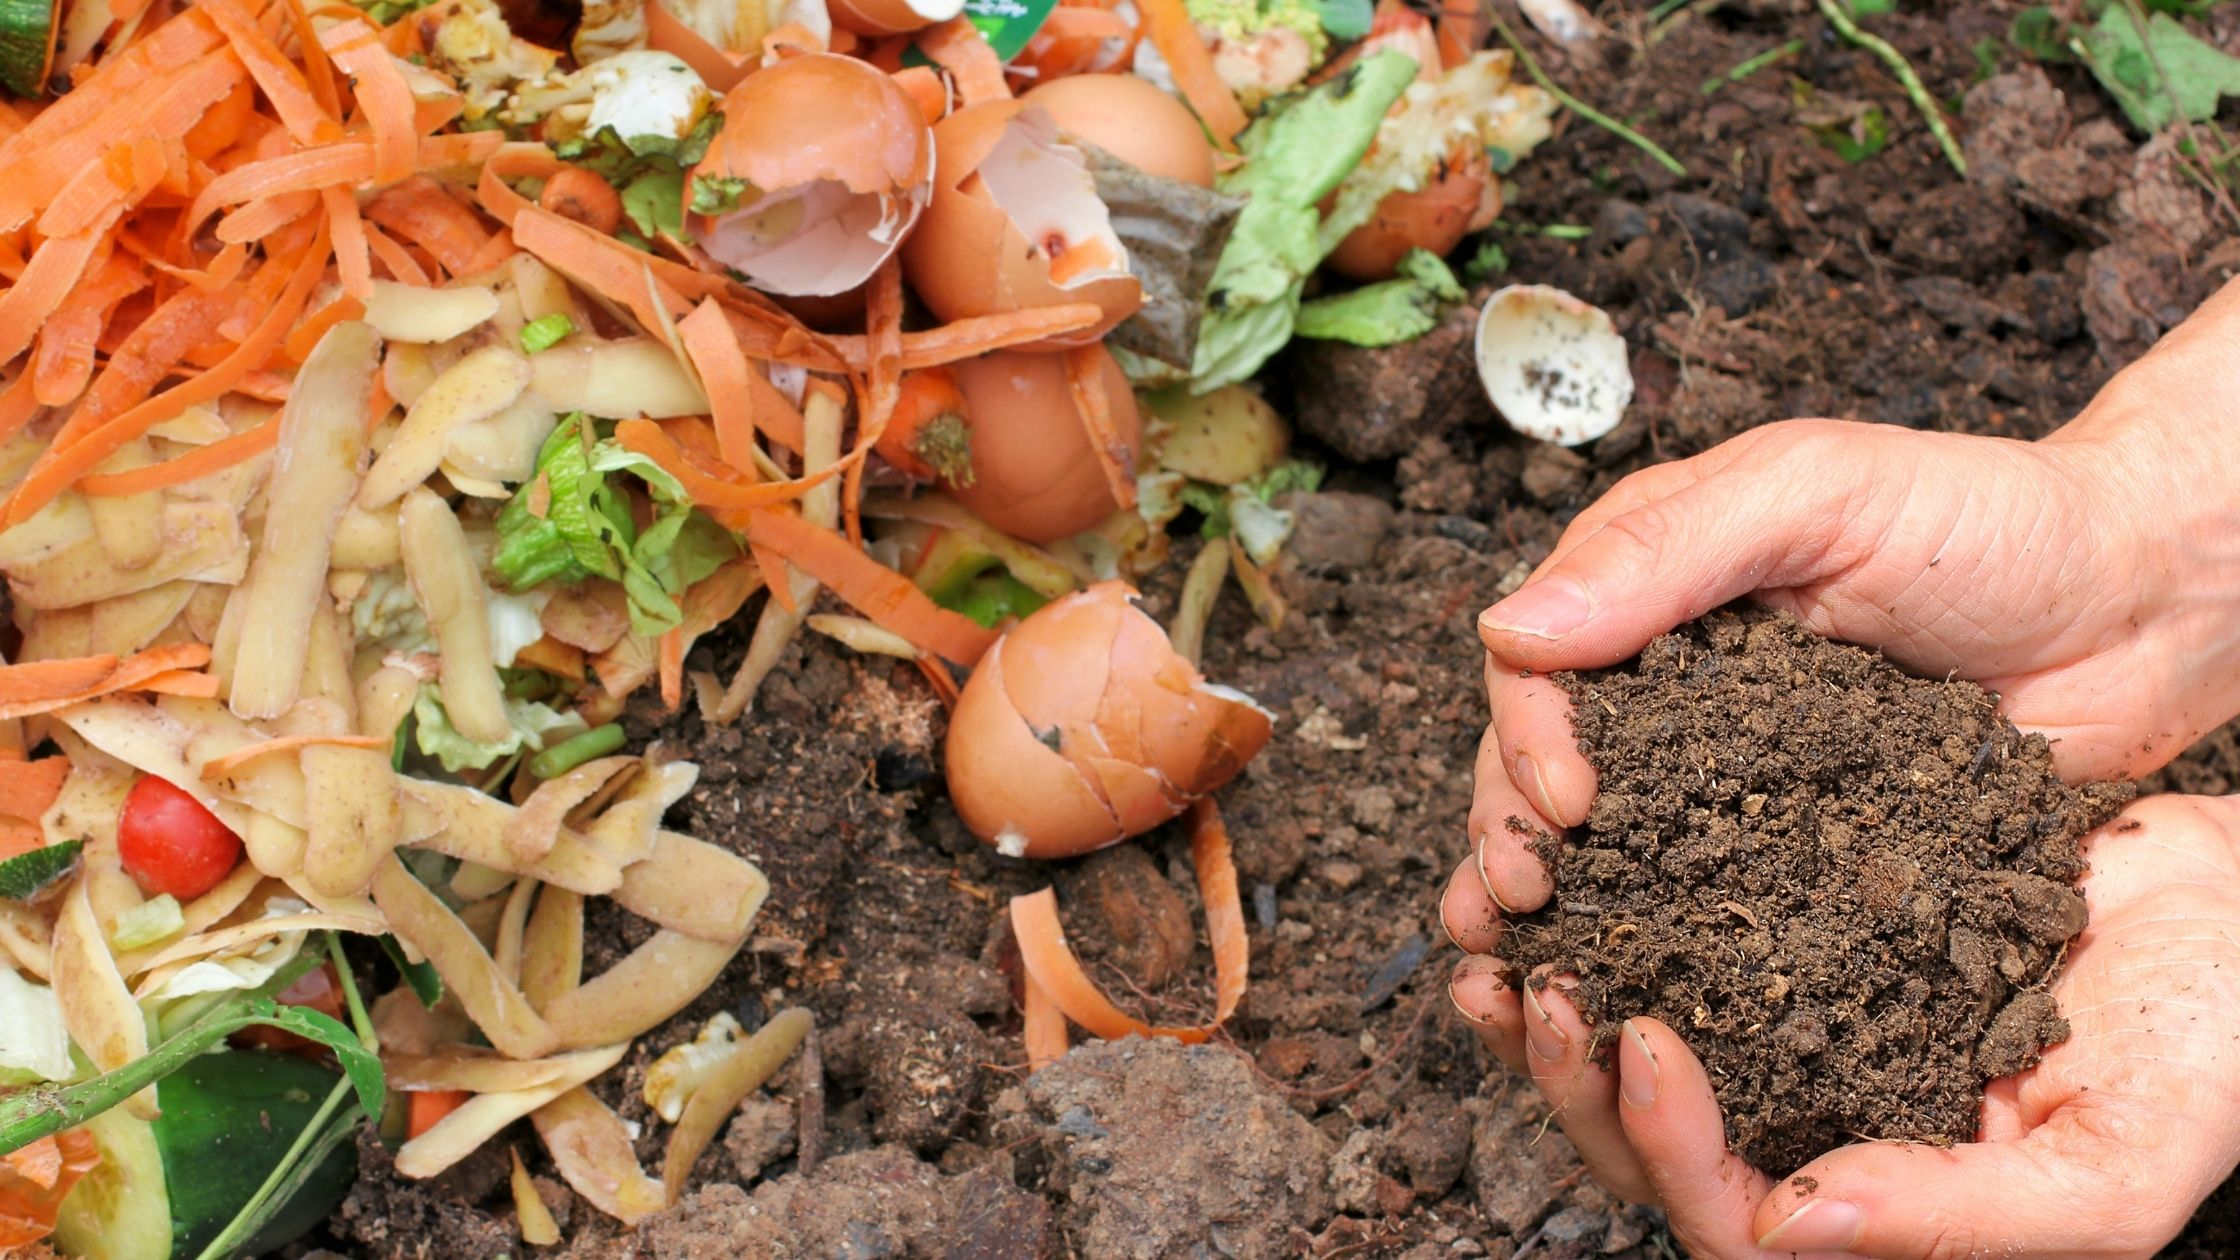 What you need to know about food waste, composting, and the environment